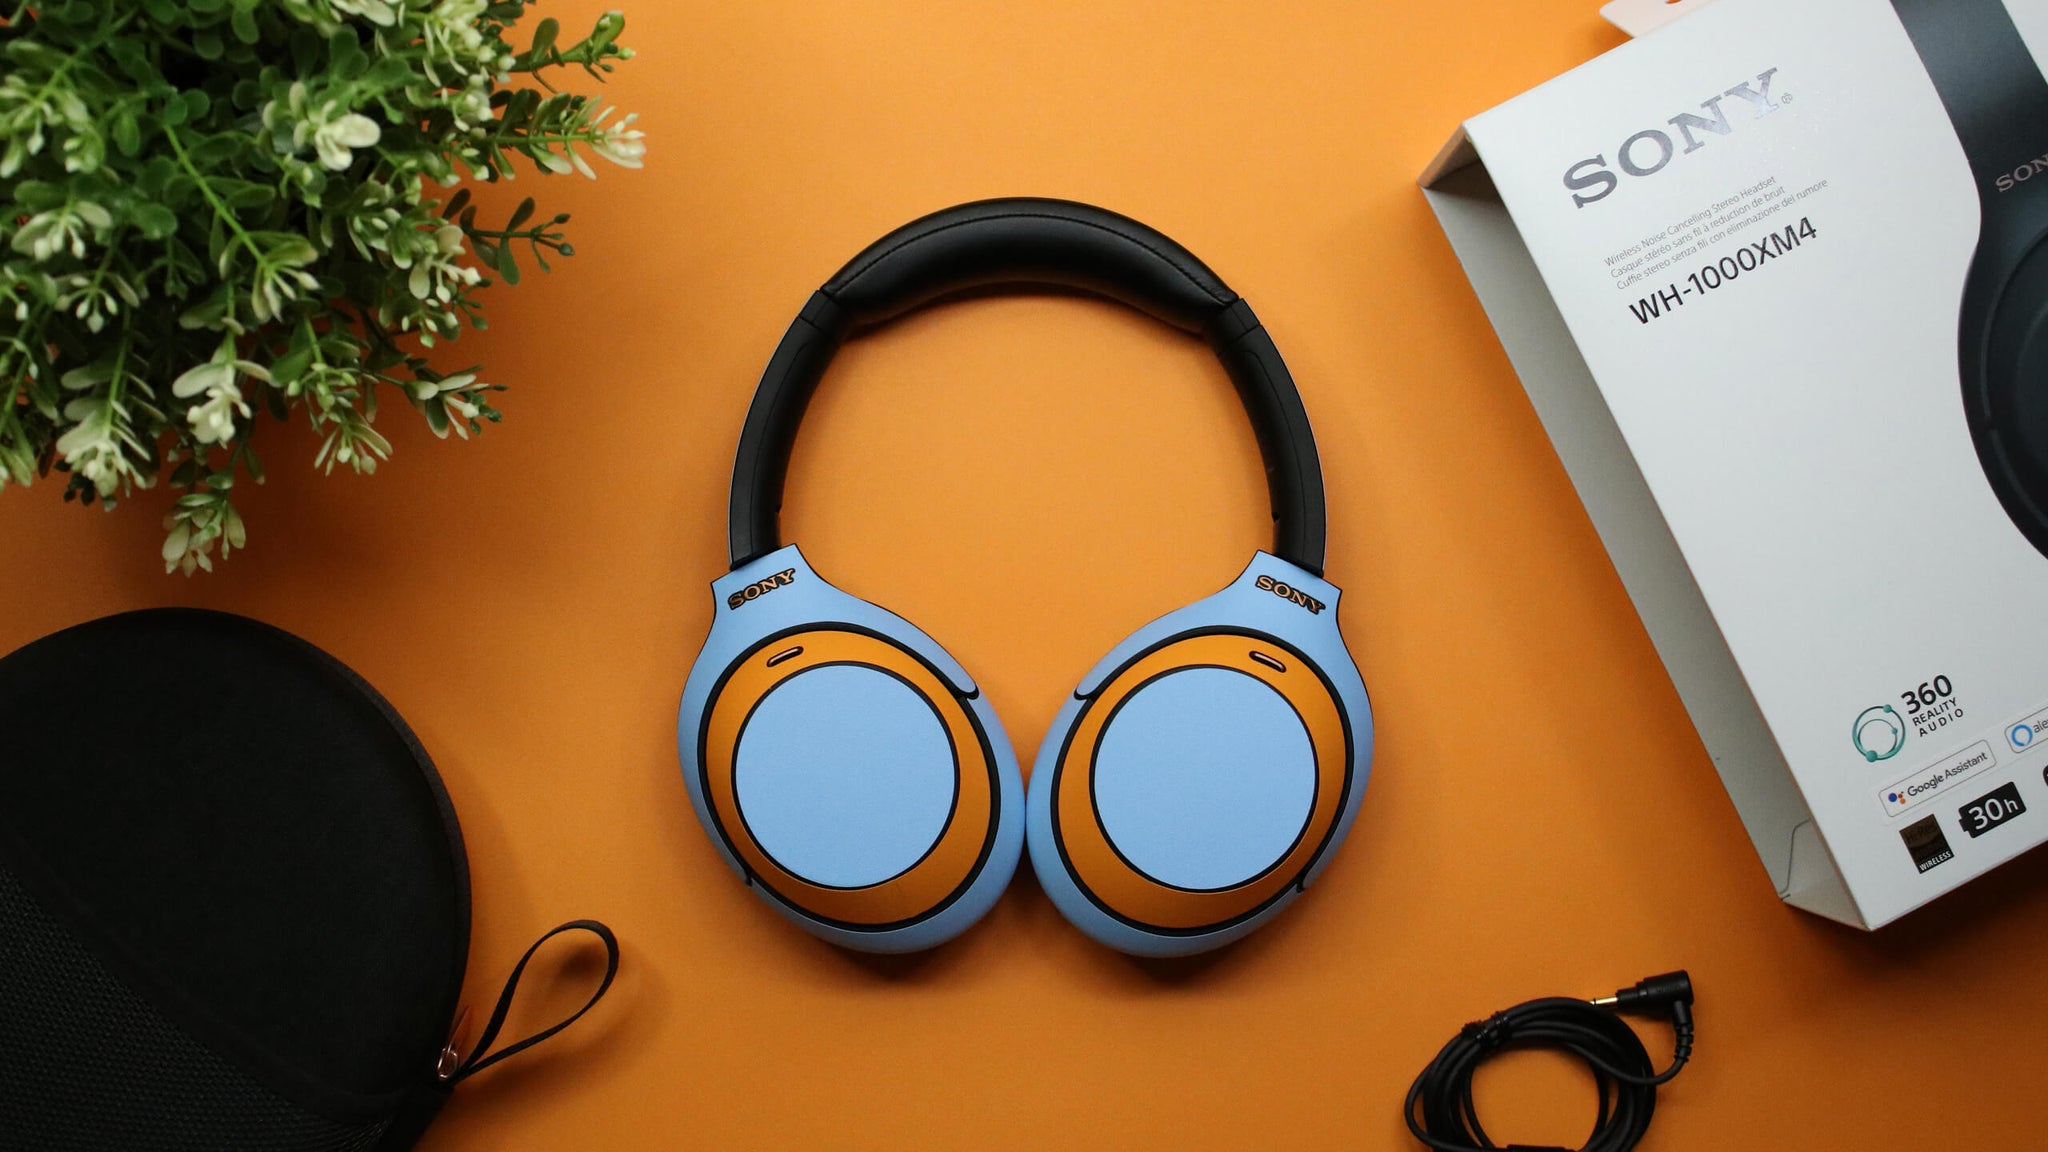 Sony WH1000XM4 Wireless Headphone Textured Matt Light Blue Skins